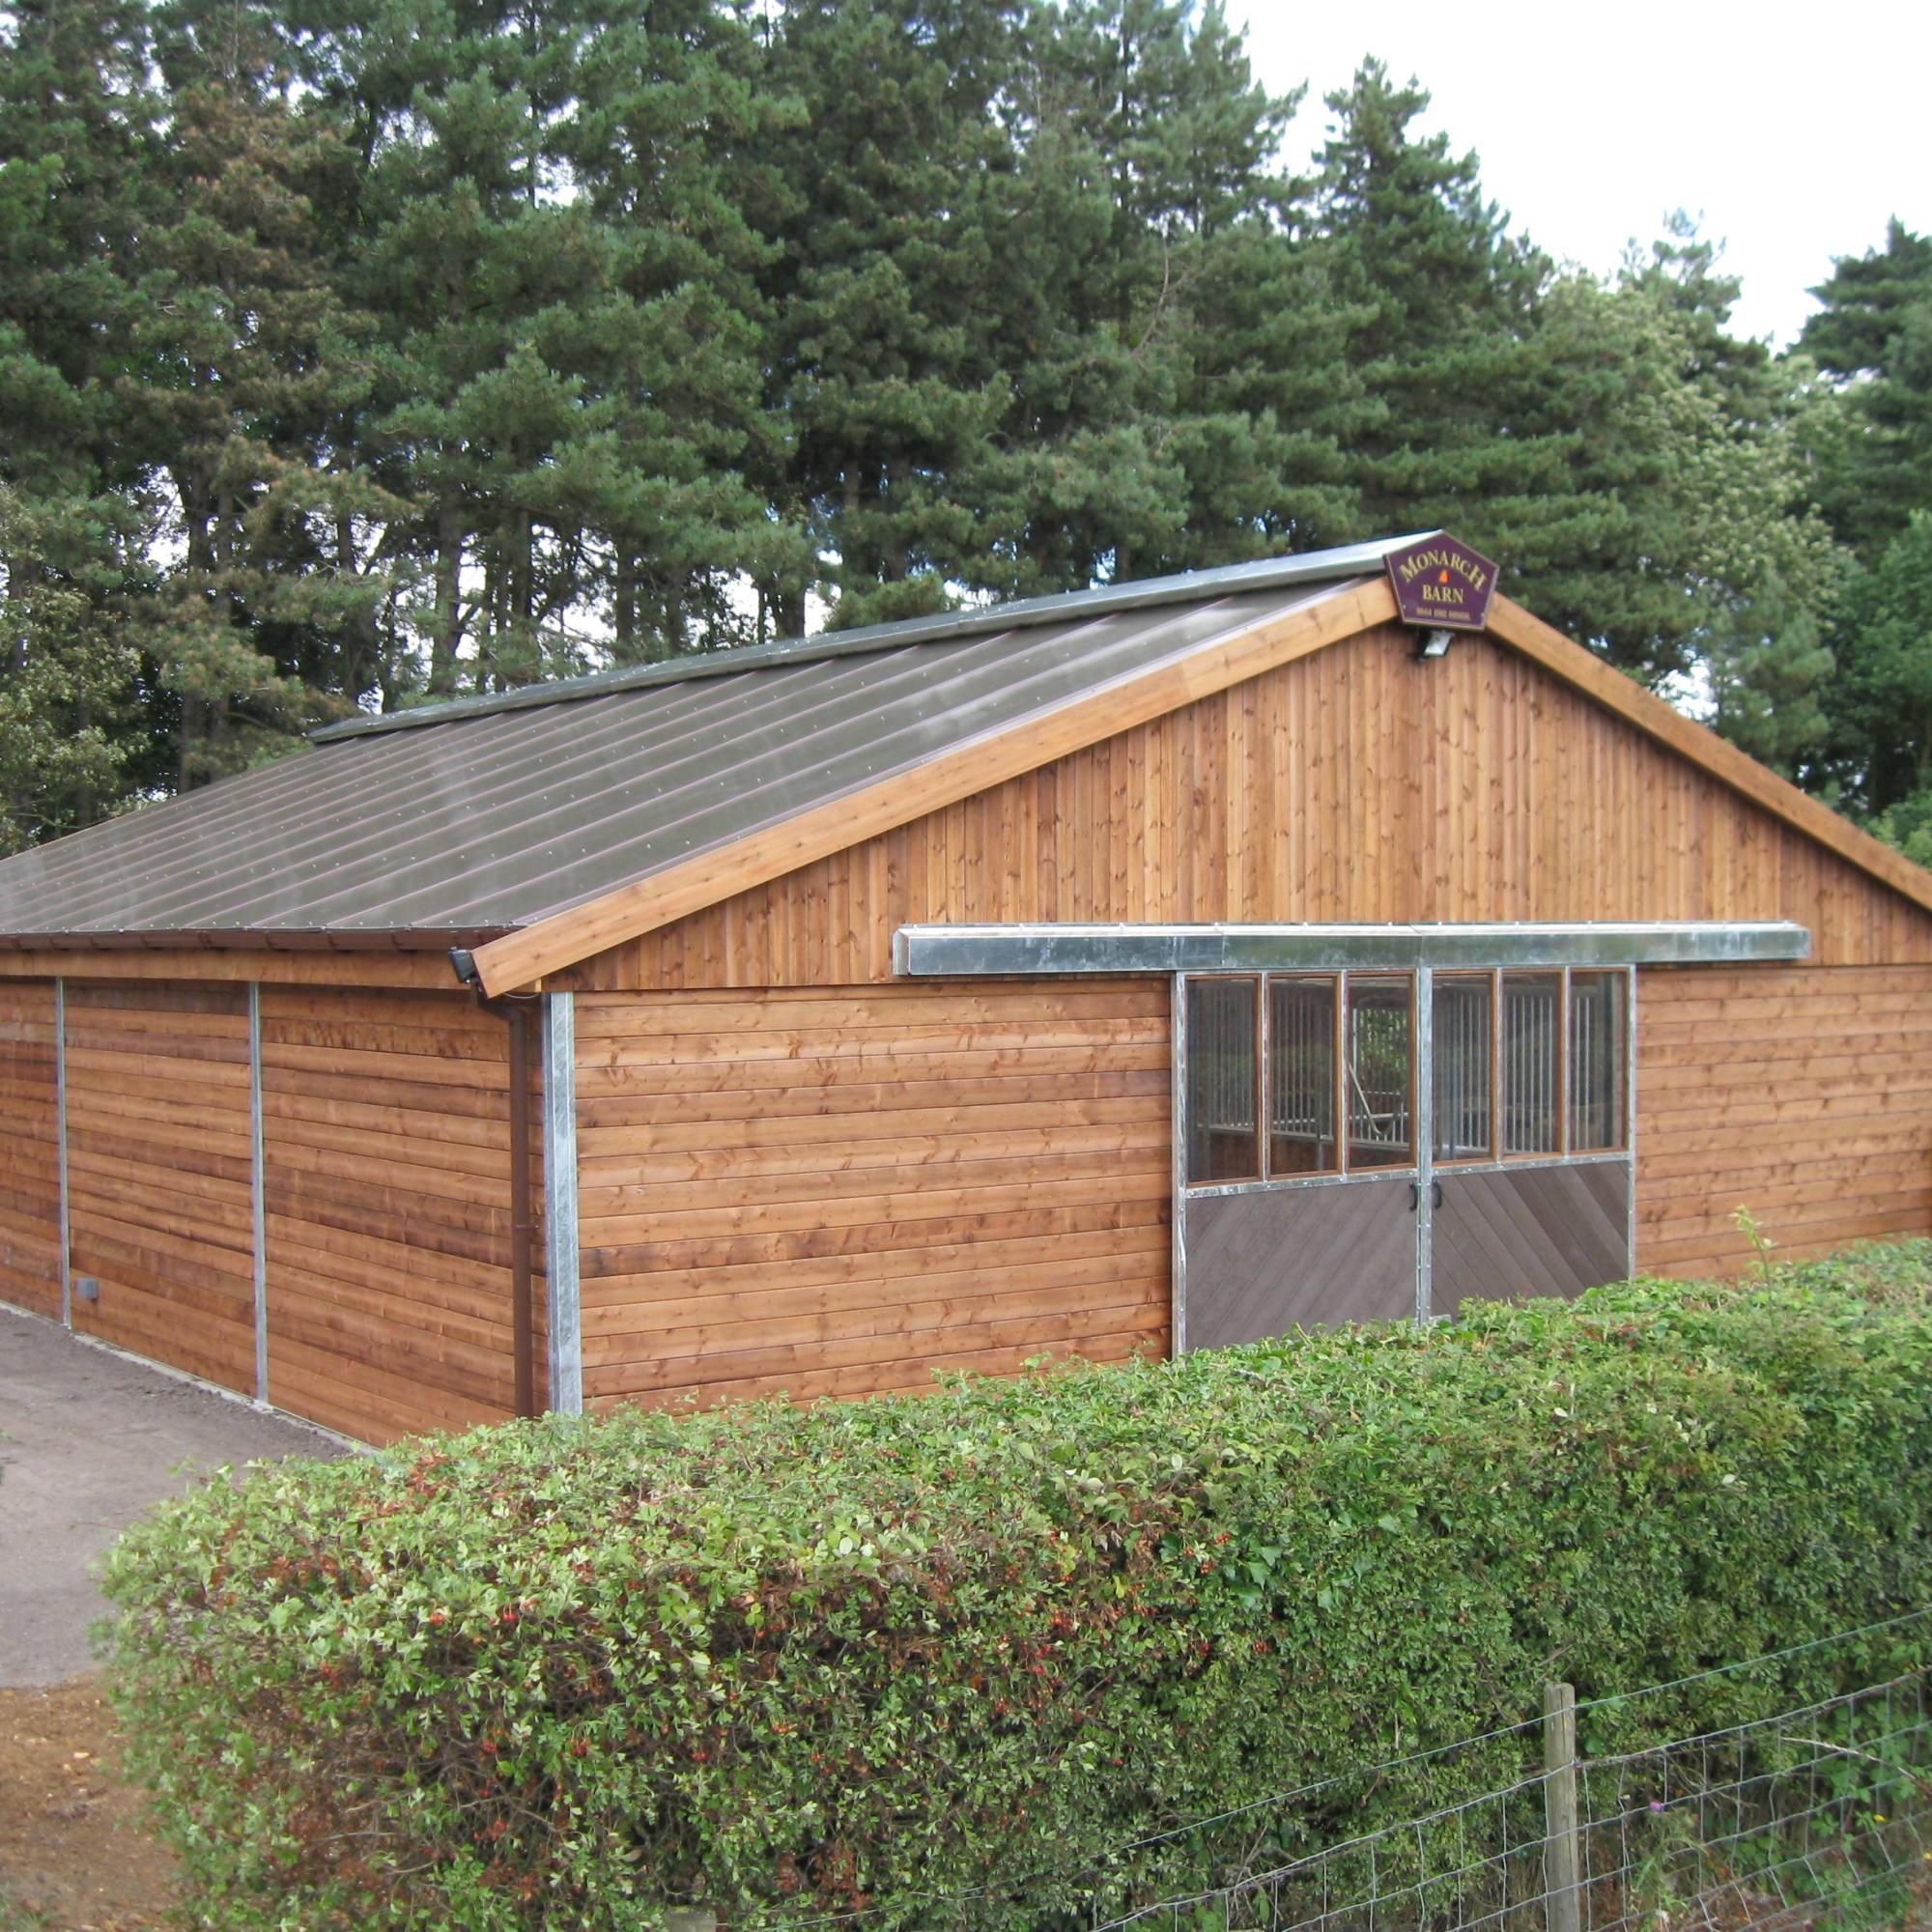 Steel framed Monarch Barn with polycarbonate roof and sliding barn doors